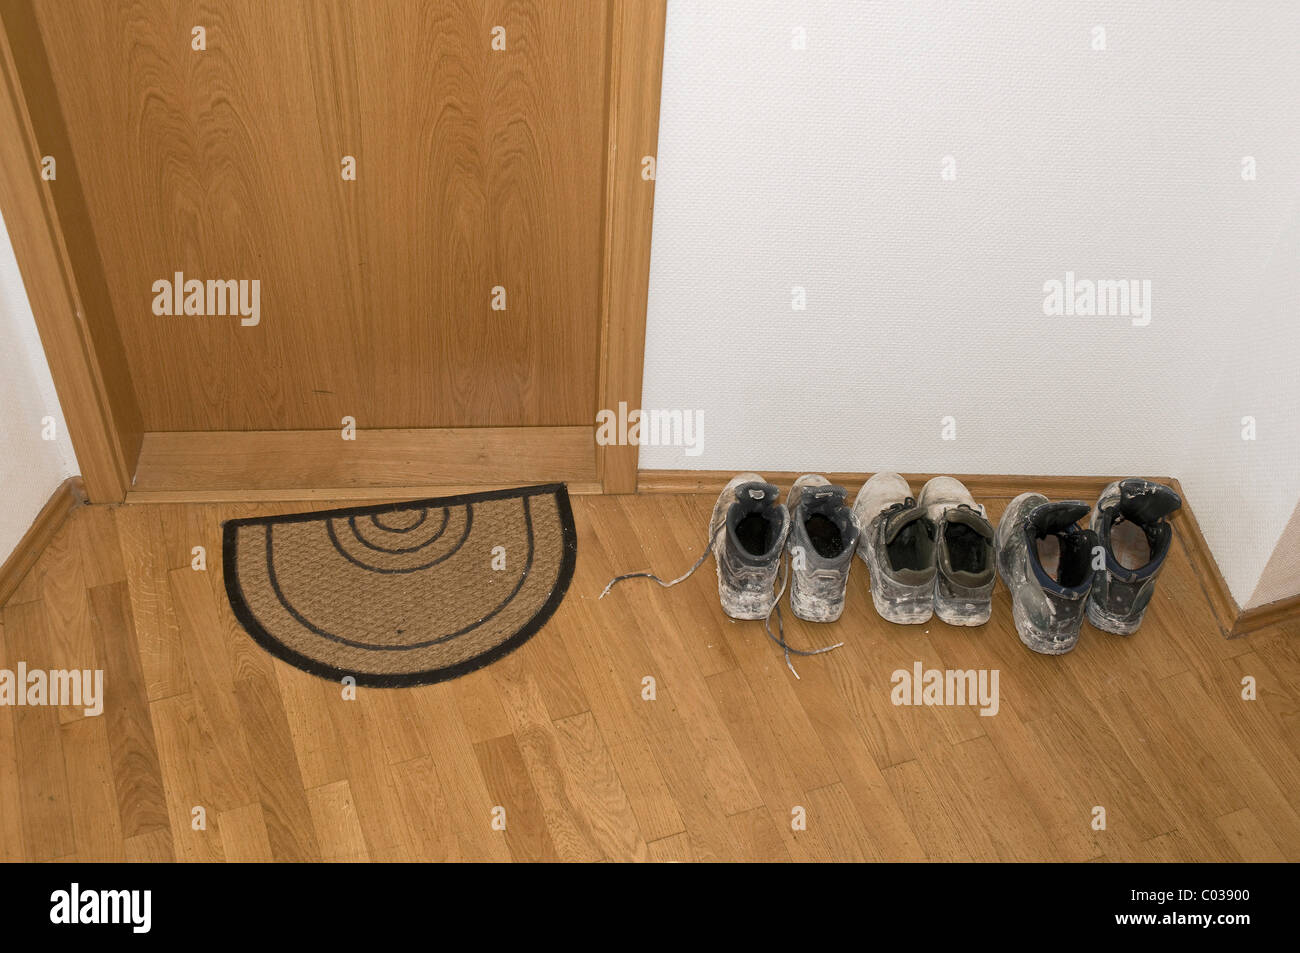 Dirty shoes in the hallway next to the entrance door in an apartment building - Stock Image